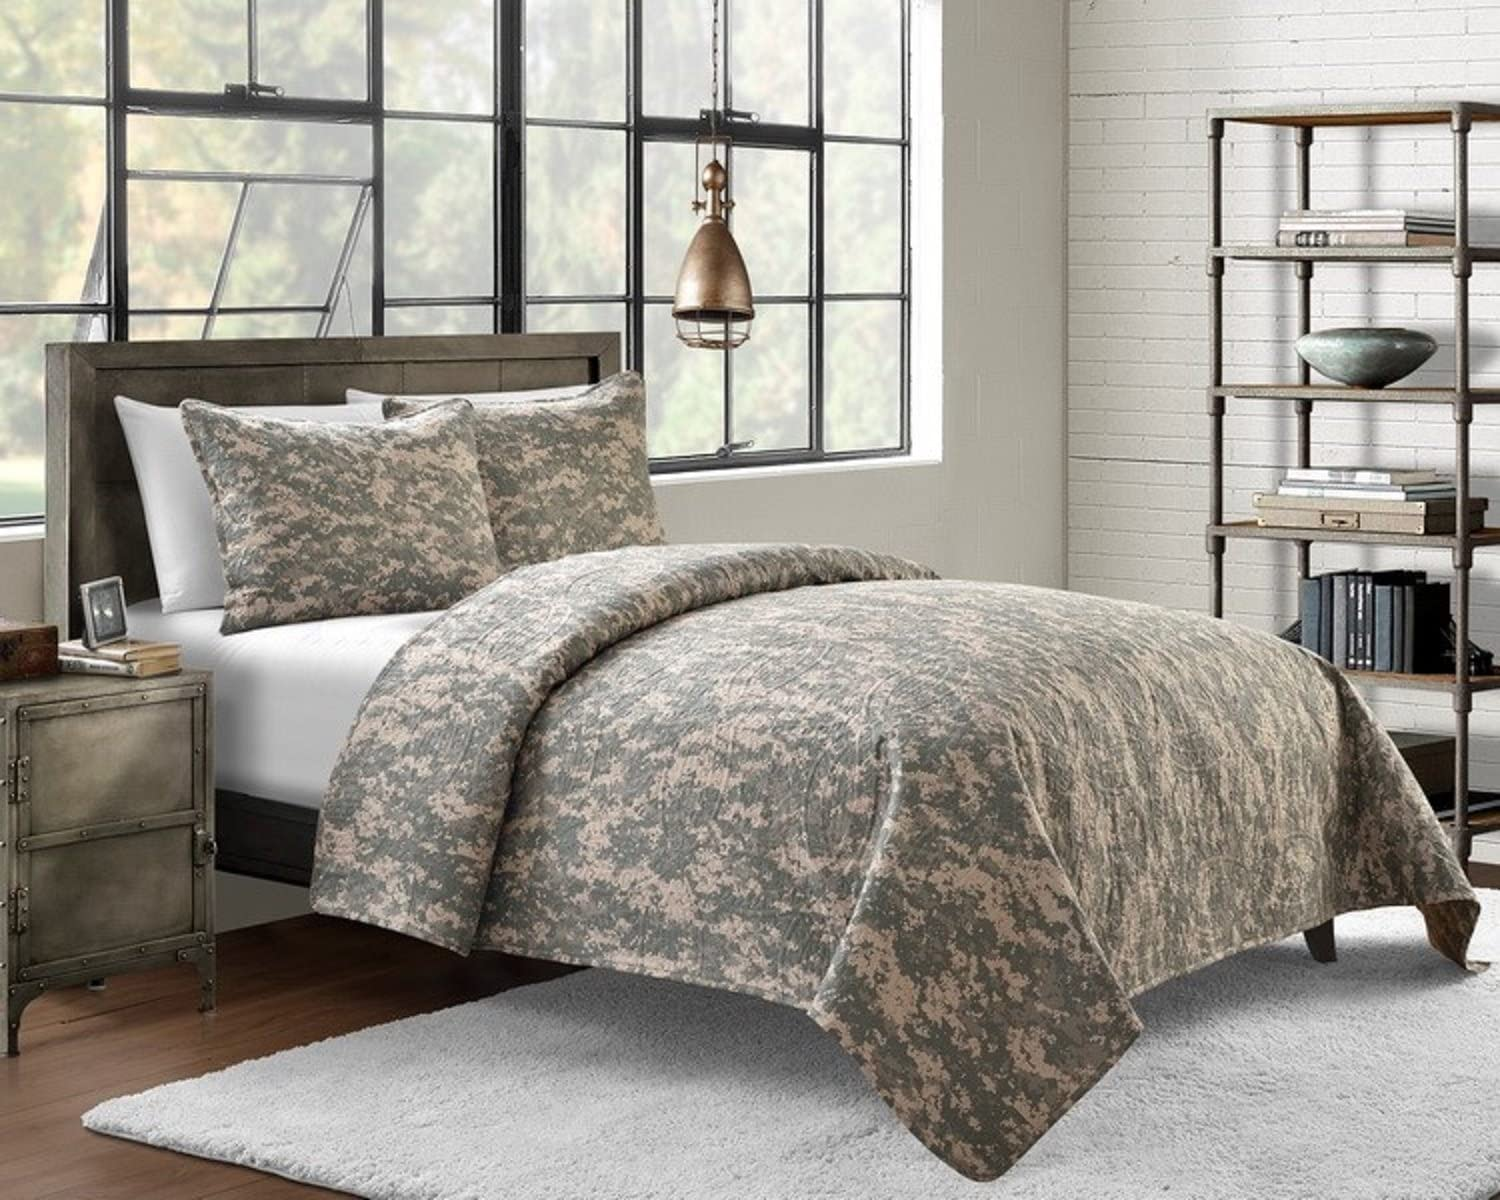 Cozy Bed Microfiber Pin Sonic Camouflage Quilt Set, Twin X-Long, Green